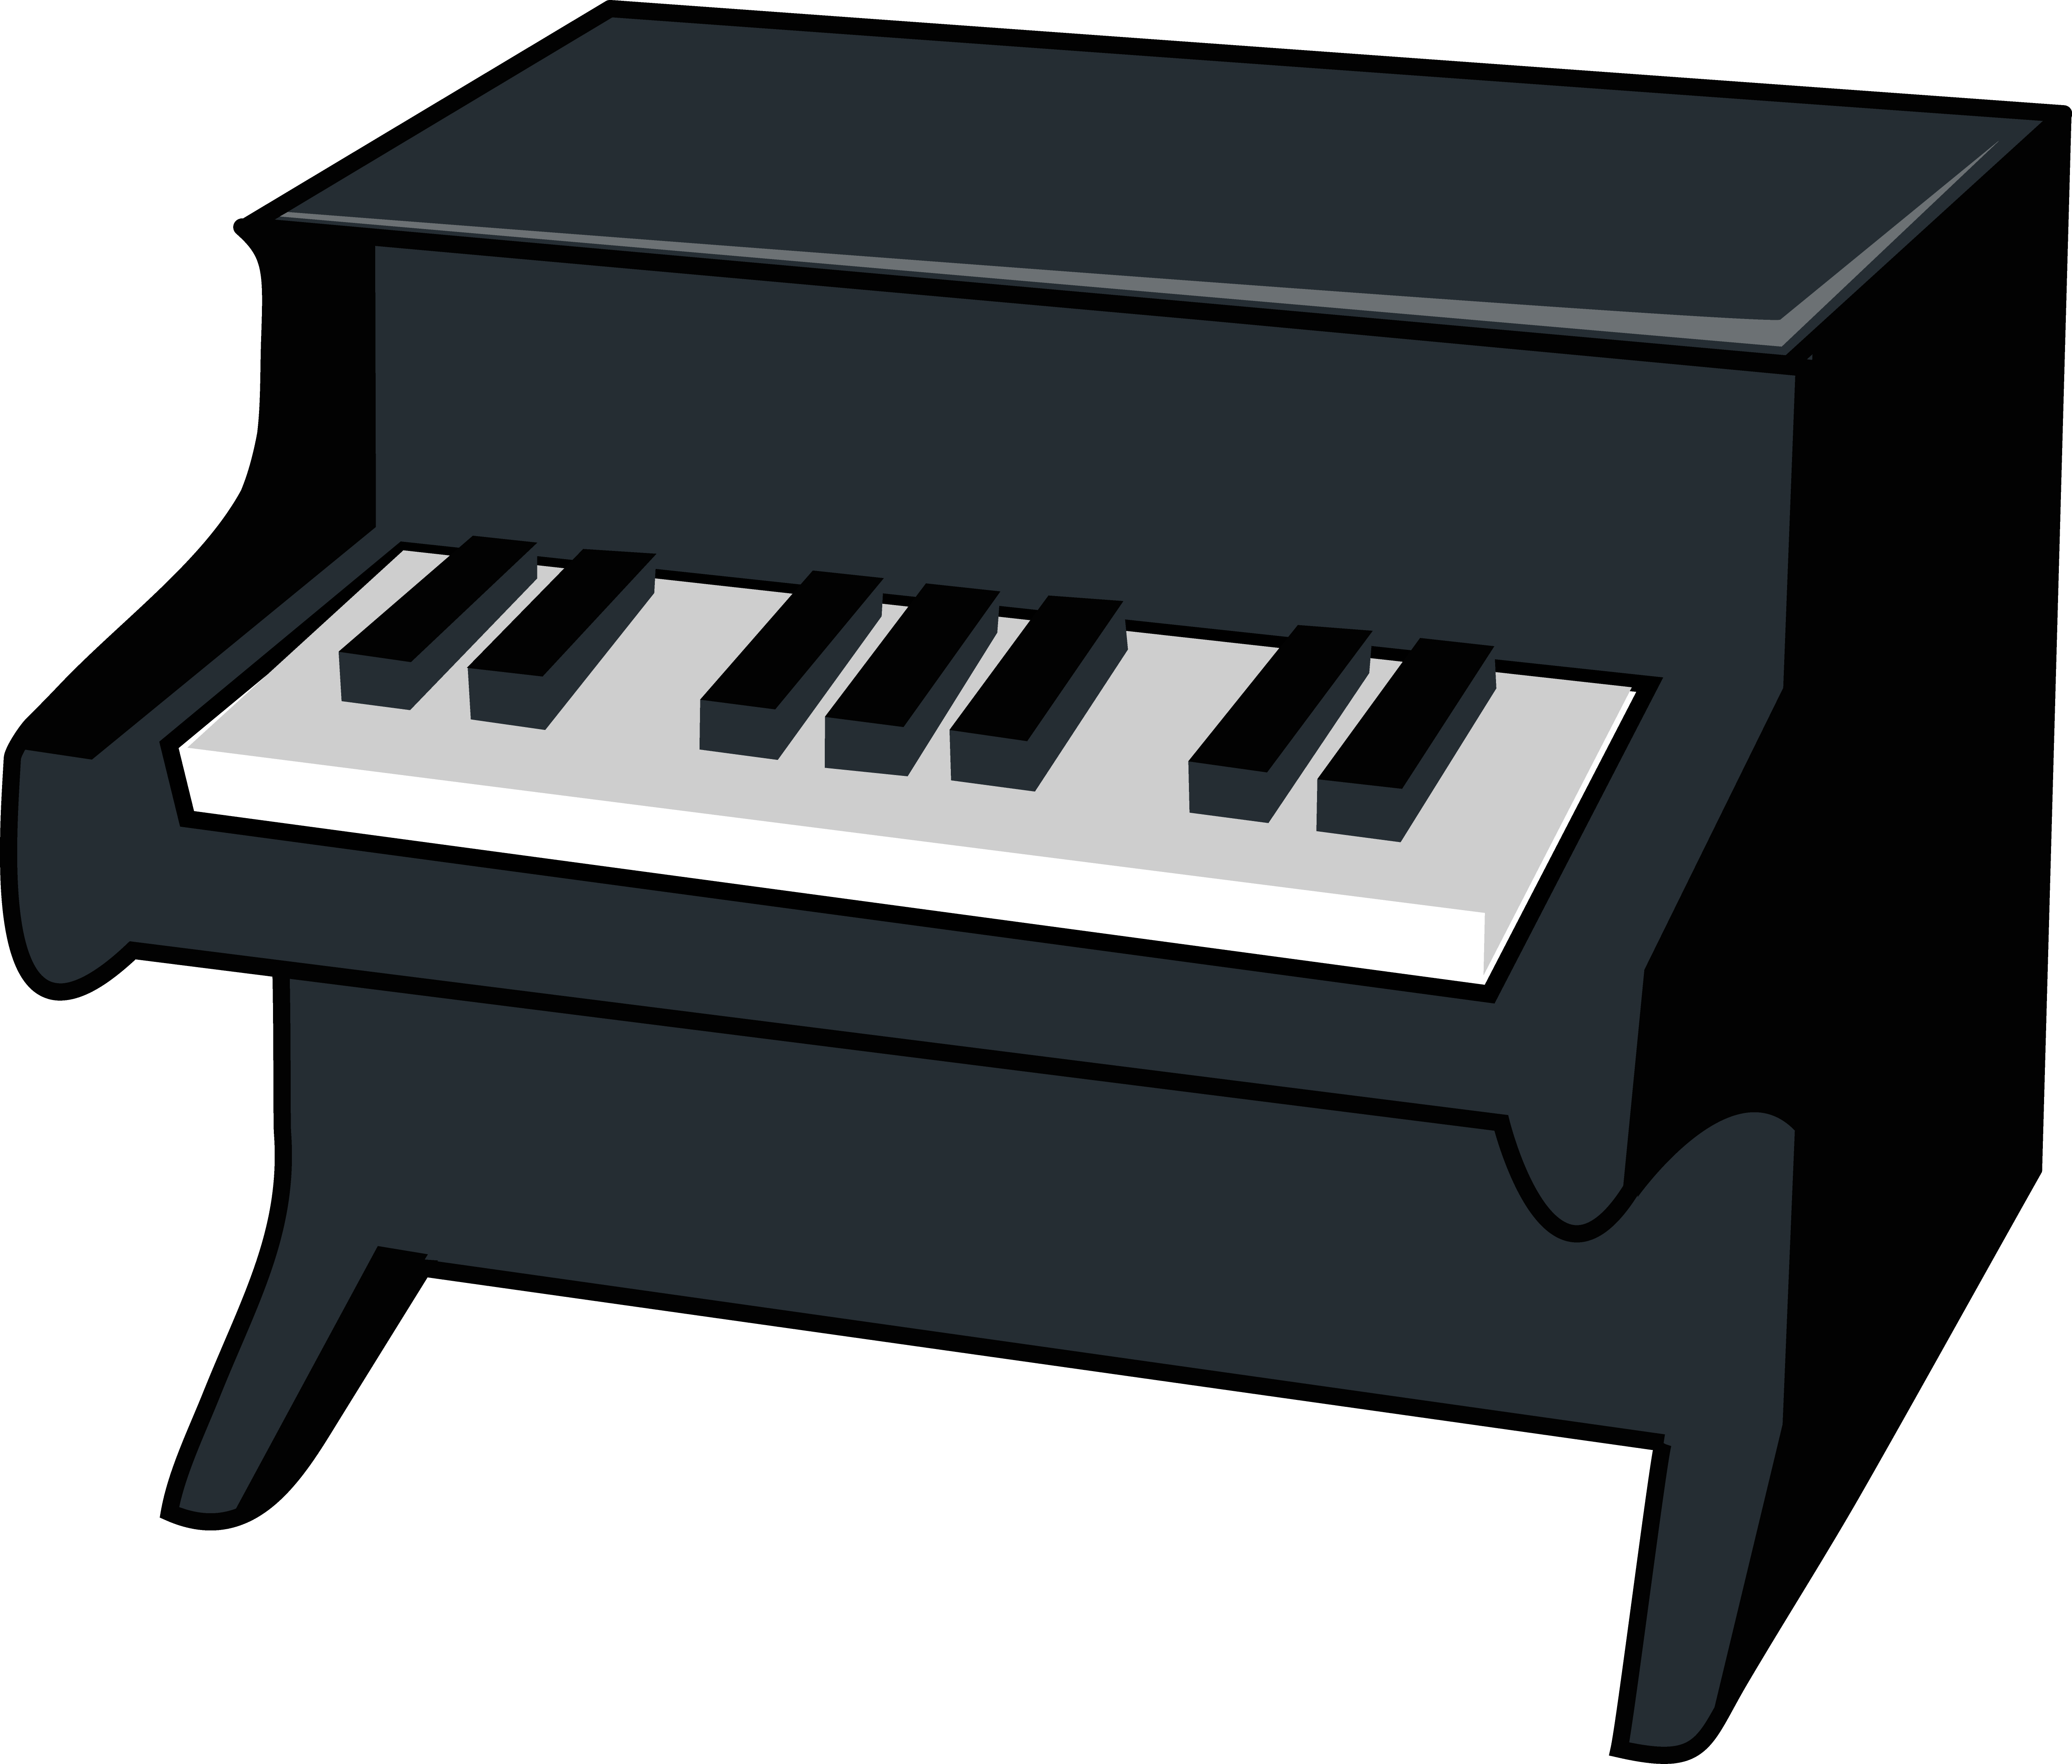 Free cartoon keys download. Piano clipart graphic stock